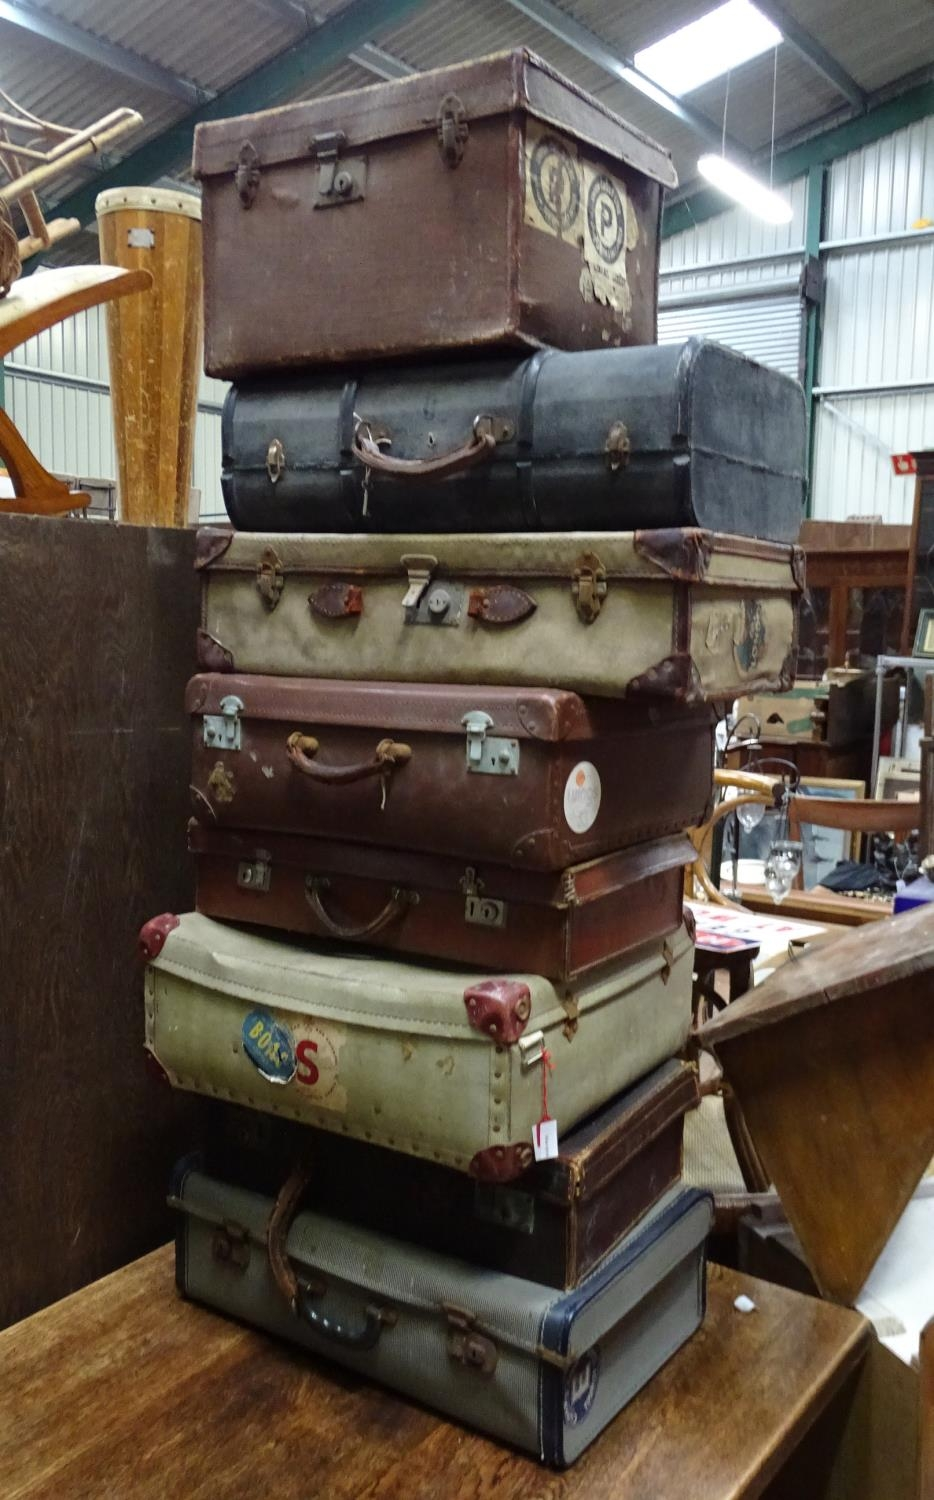 Eight vintage trunks / suitcases with old tourist labels (8) Please Note - we do not make - Image 3 of 3